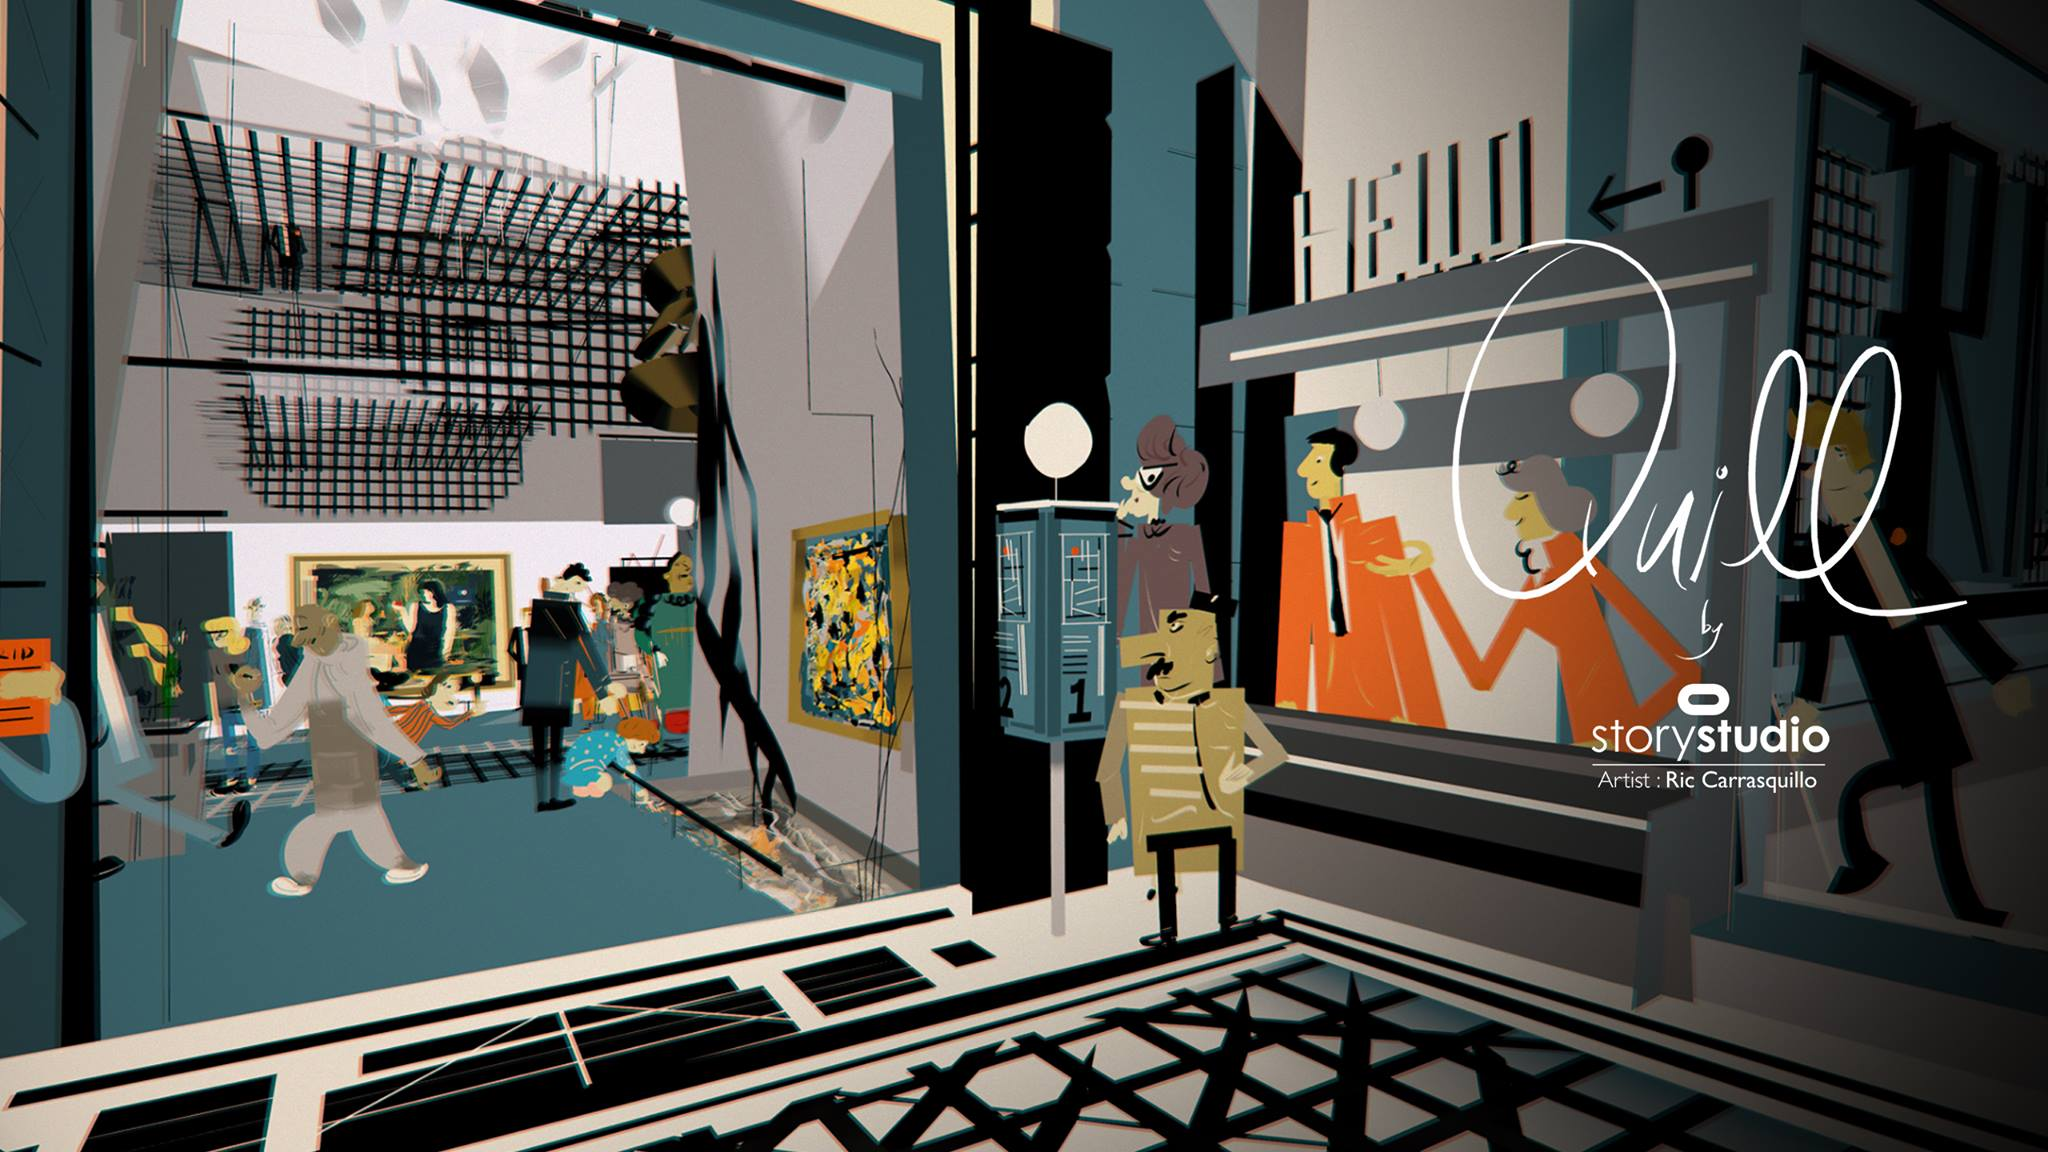 """Watch This Amazing Walk Through Of A VR Painting Called """"First Tuesday"""" By Ric Carrasquillo On Quill"""